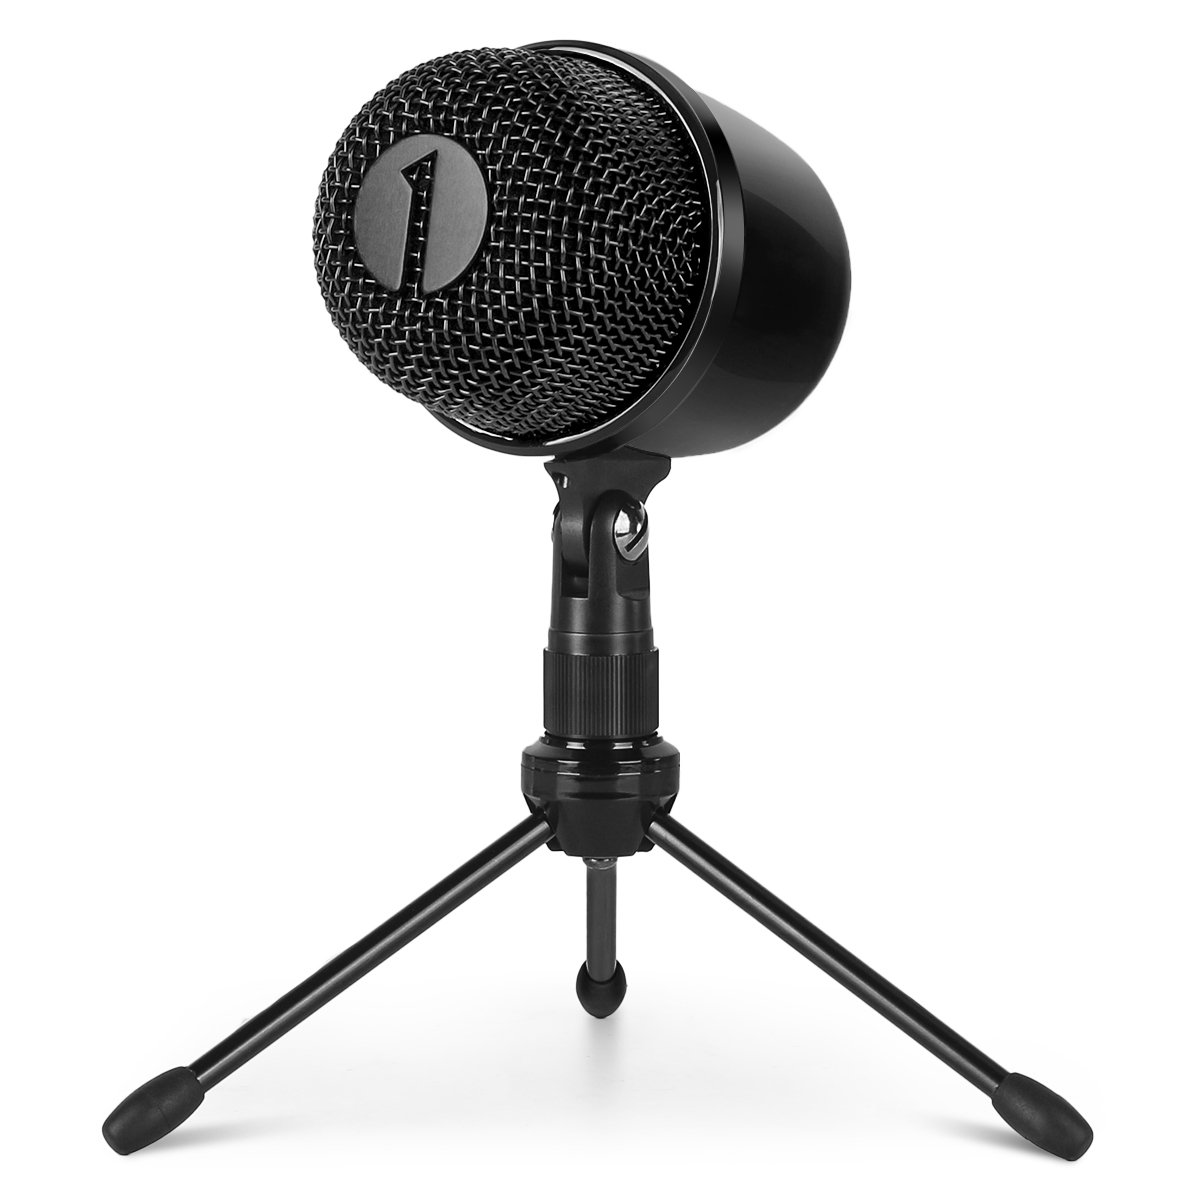 1byone USB Microphone with Tripod, Mute Button with LED, Plug & Play Cardioid Condenser USB Microphone 436NA-0003